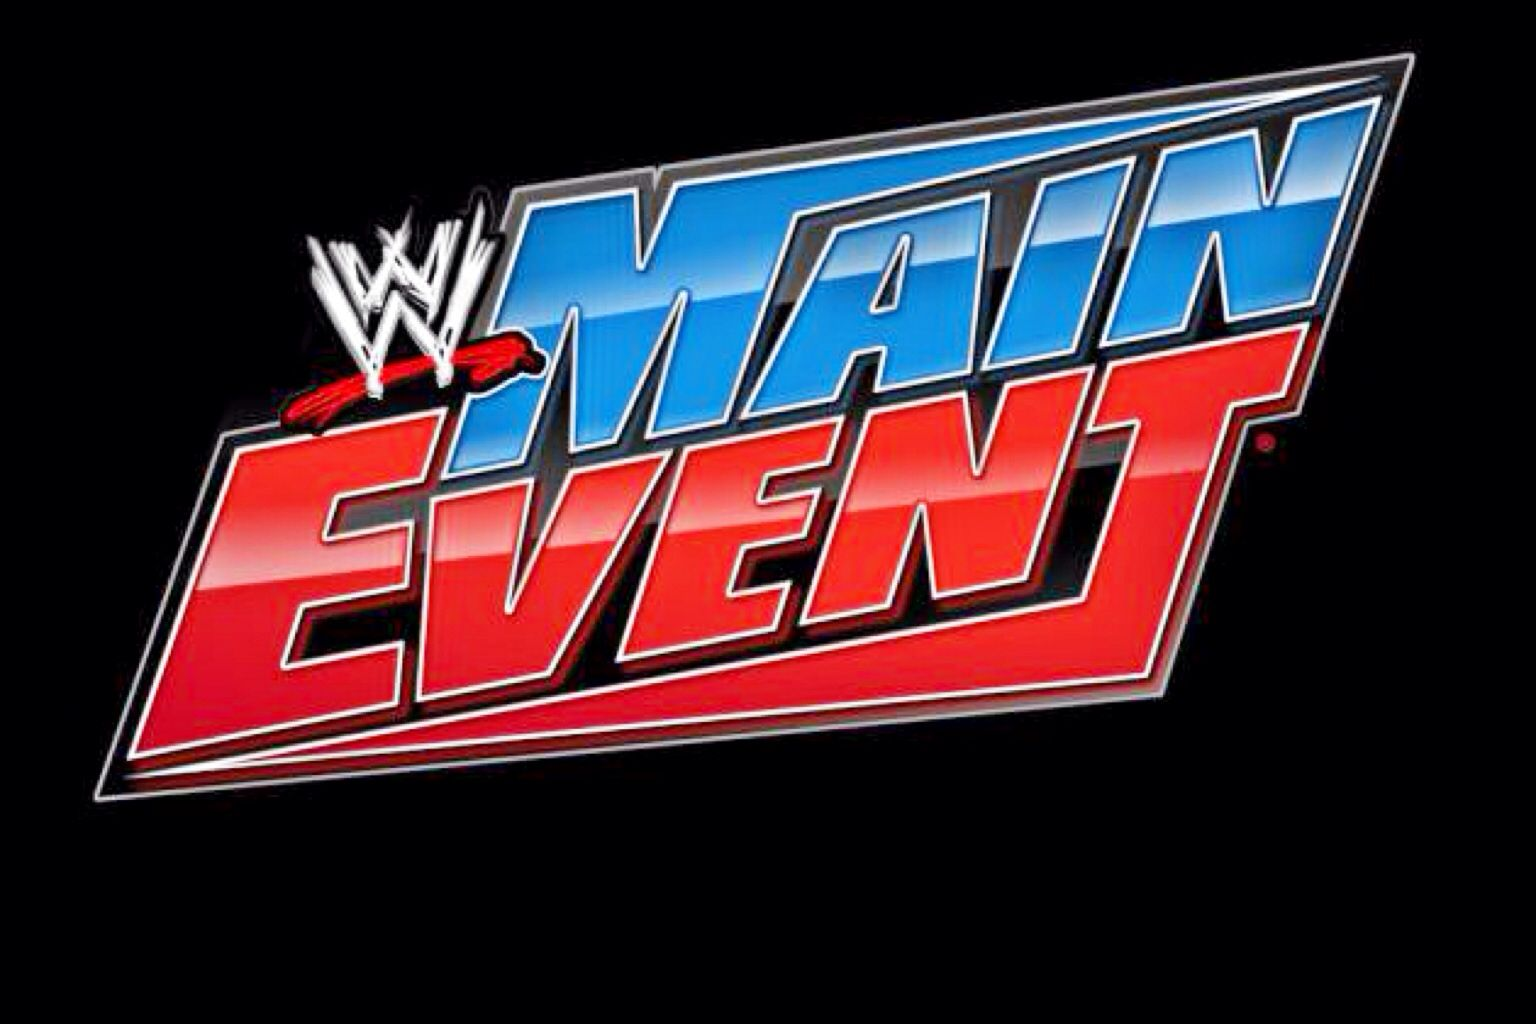 WWE MAIN EVENT WAS SUPER COLOSSAL! I LIKED THE MATCH OF